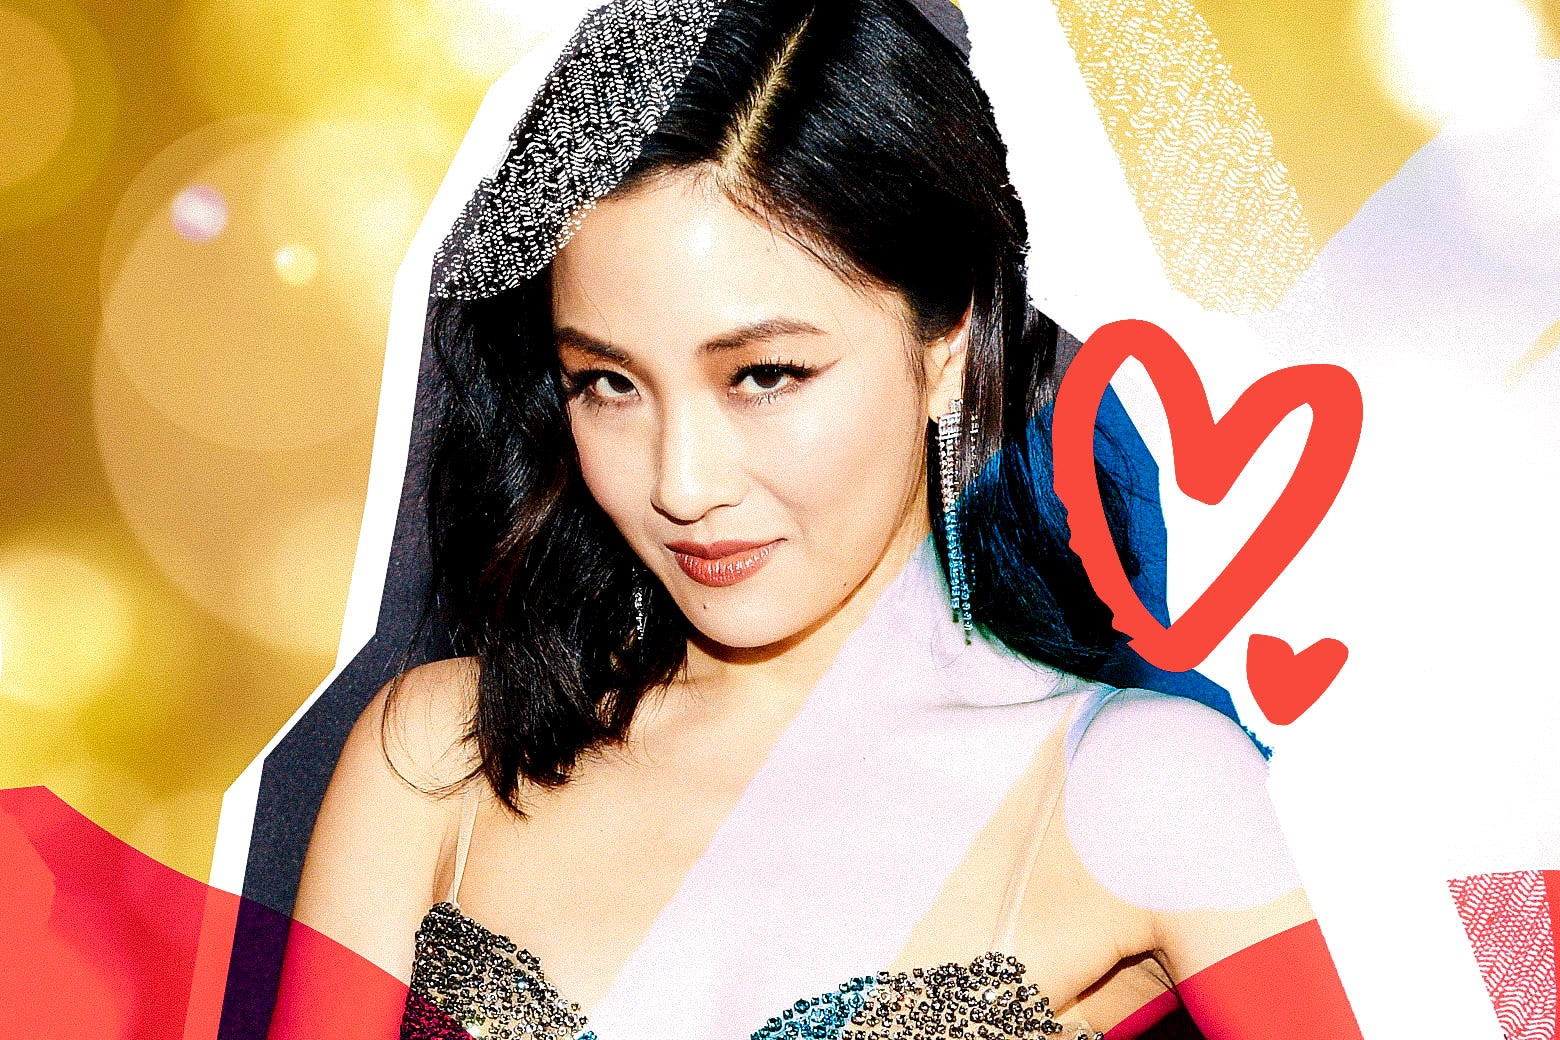 Photo illustration of Constance Wu, looking fabulous